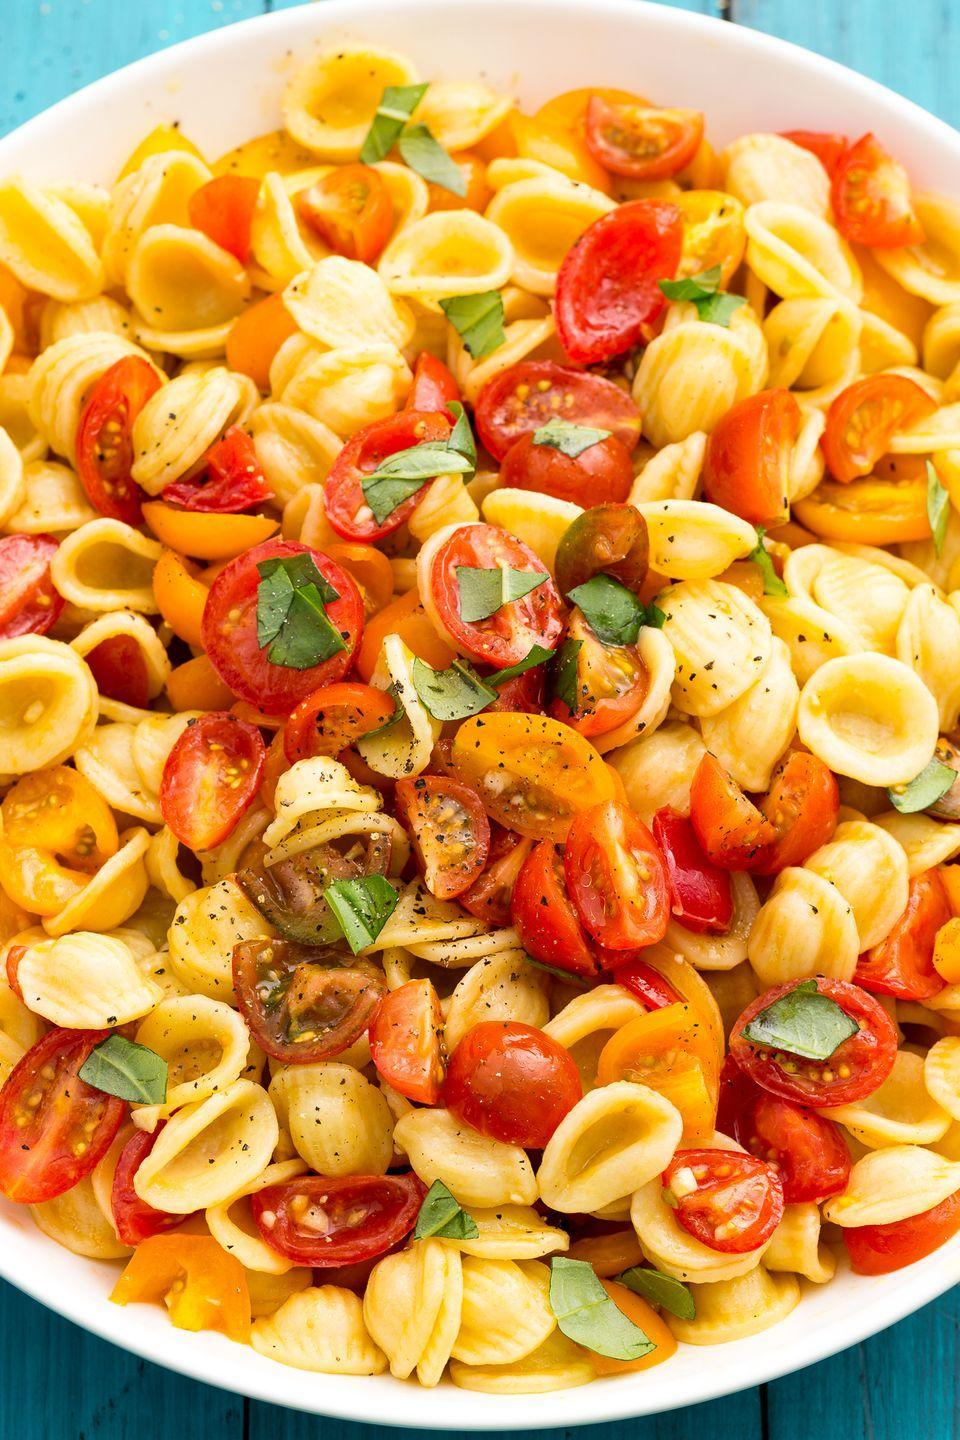 "<p>This salad is the epitome of summer in a bowl.</p><p>Get the recipe from <a href=""https://www.delish.com/cooking/recipe-ideas/recipes/a47335/bruschetta-pasta-salad-recipe/"" rel=""nofollow noopener"" target=""_blank"" data-ylk=""slk:Delish"" class=""link rapid-noclick-resp"">Delish</a>.</p>"